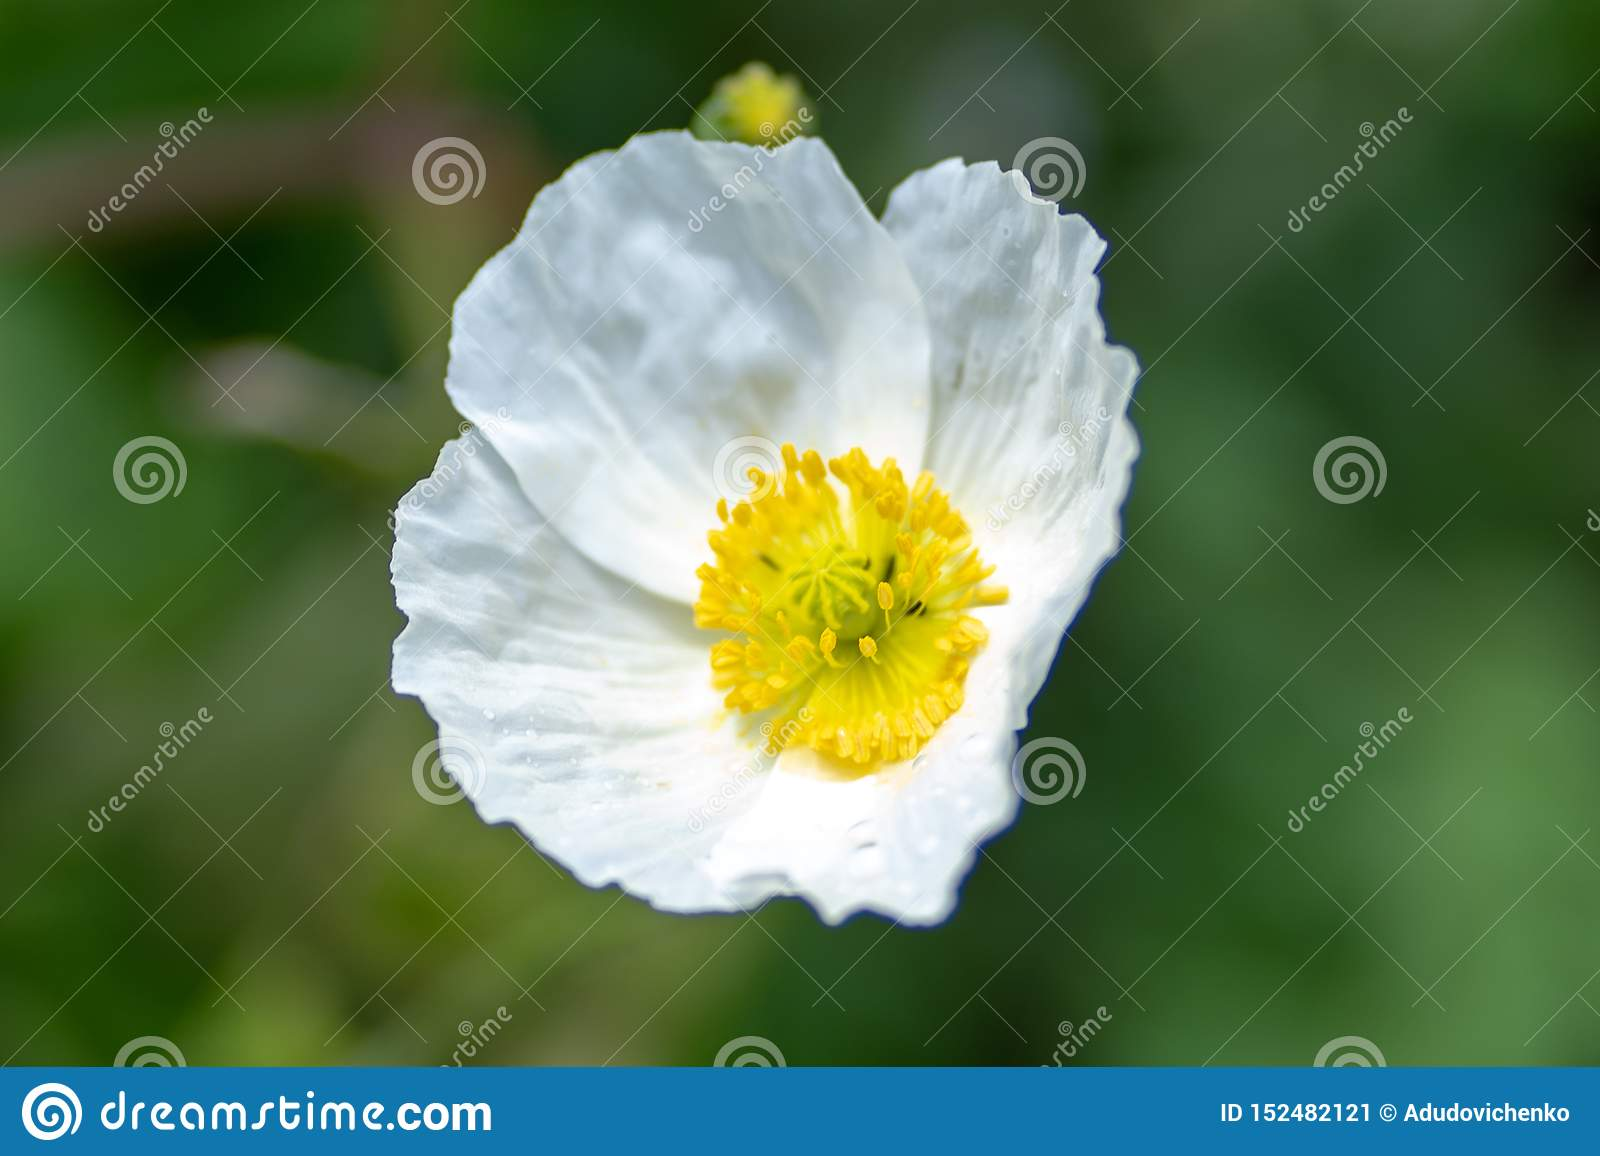 Macro shot of a white flower on a natural background in a soft focus